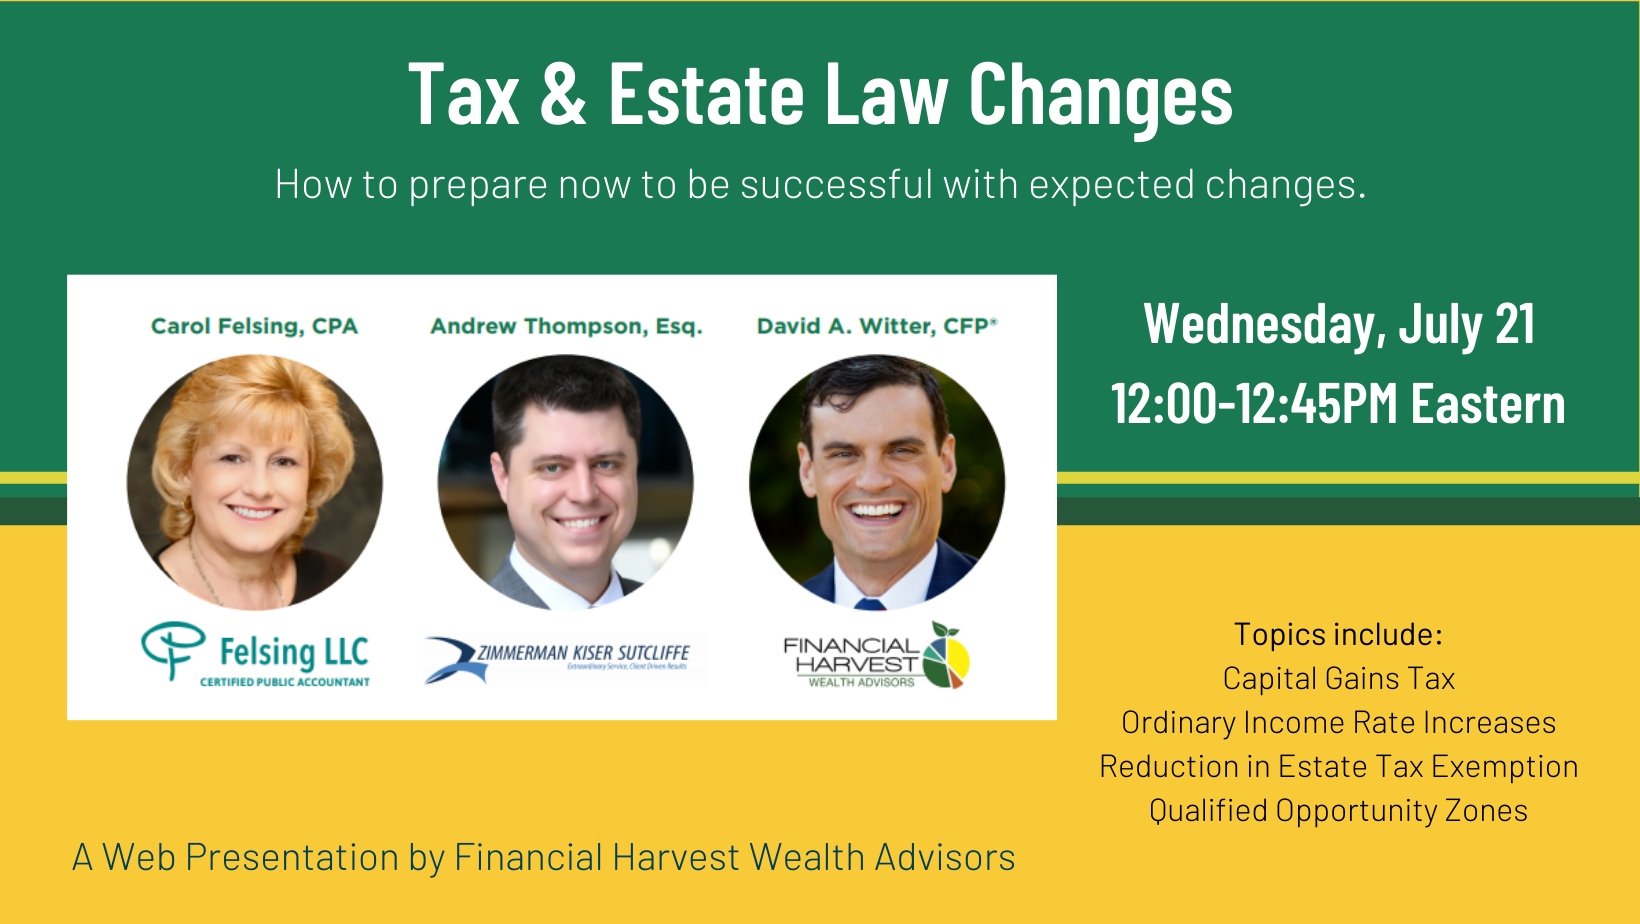 Register for tax & estate law changes webinar - limited to 100 participants